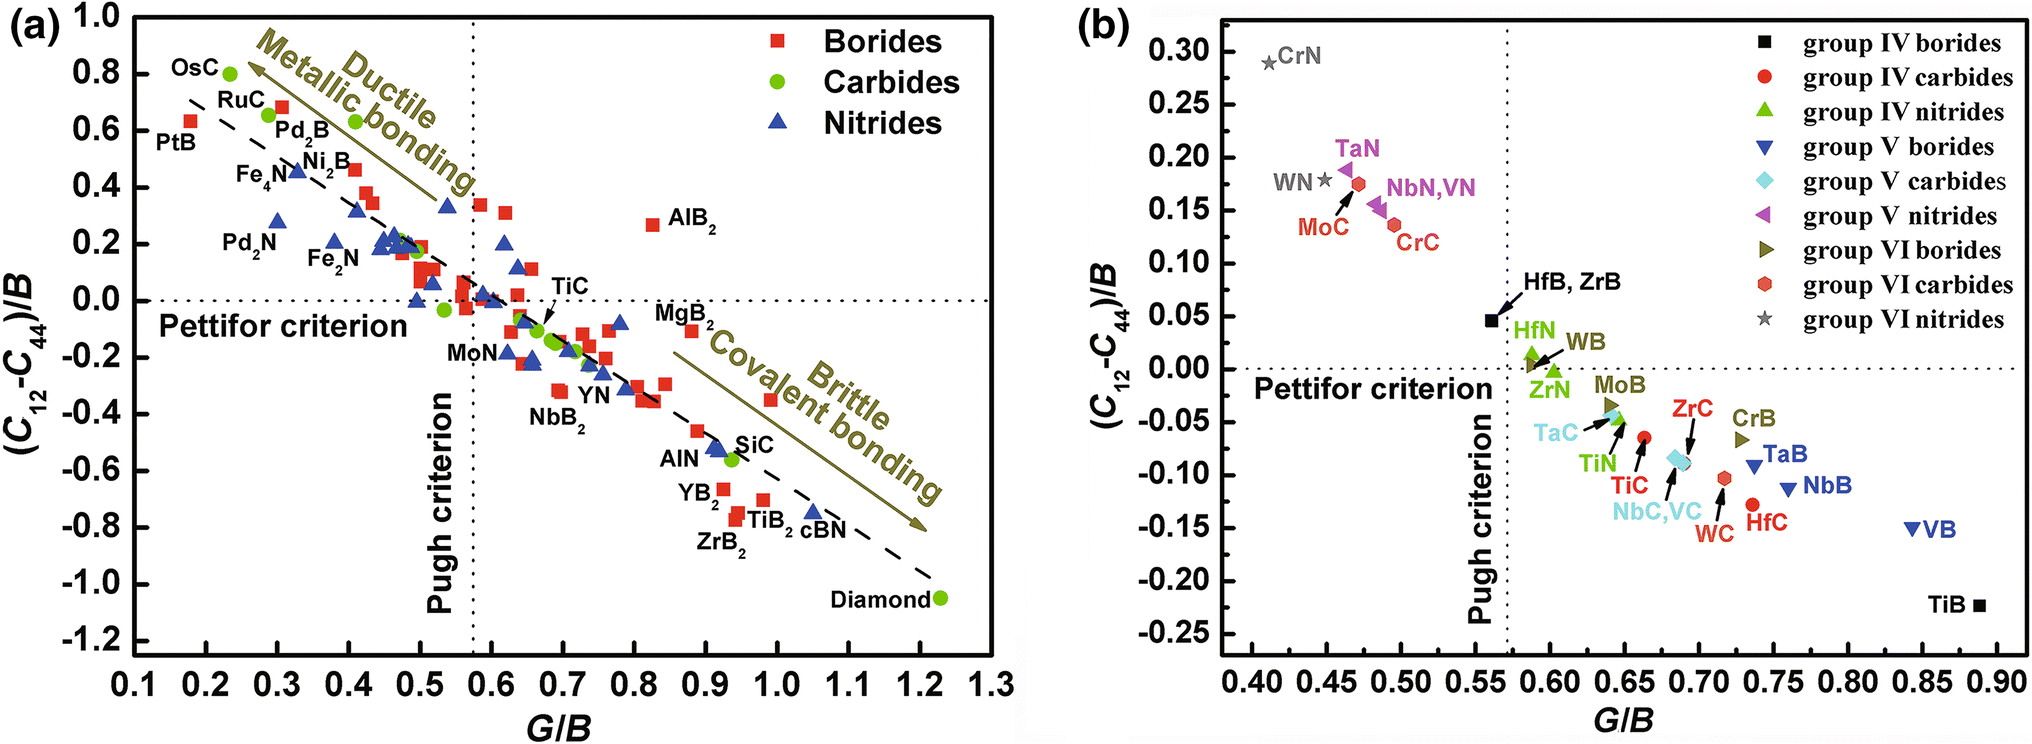 Elastic Properties and Stacking Fault Energies of Borides